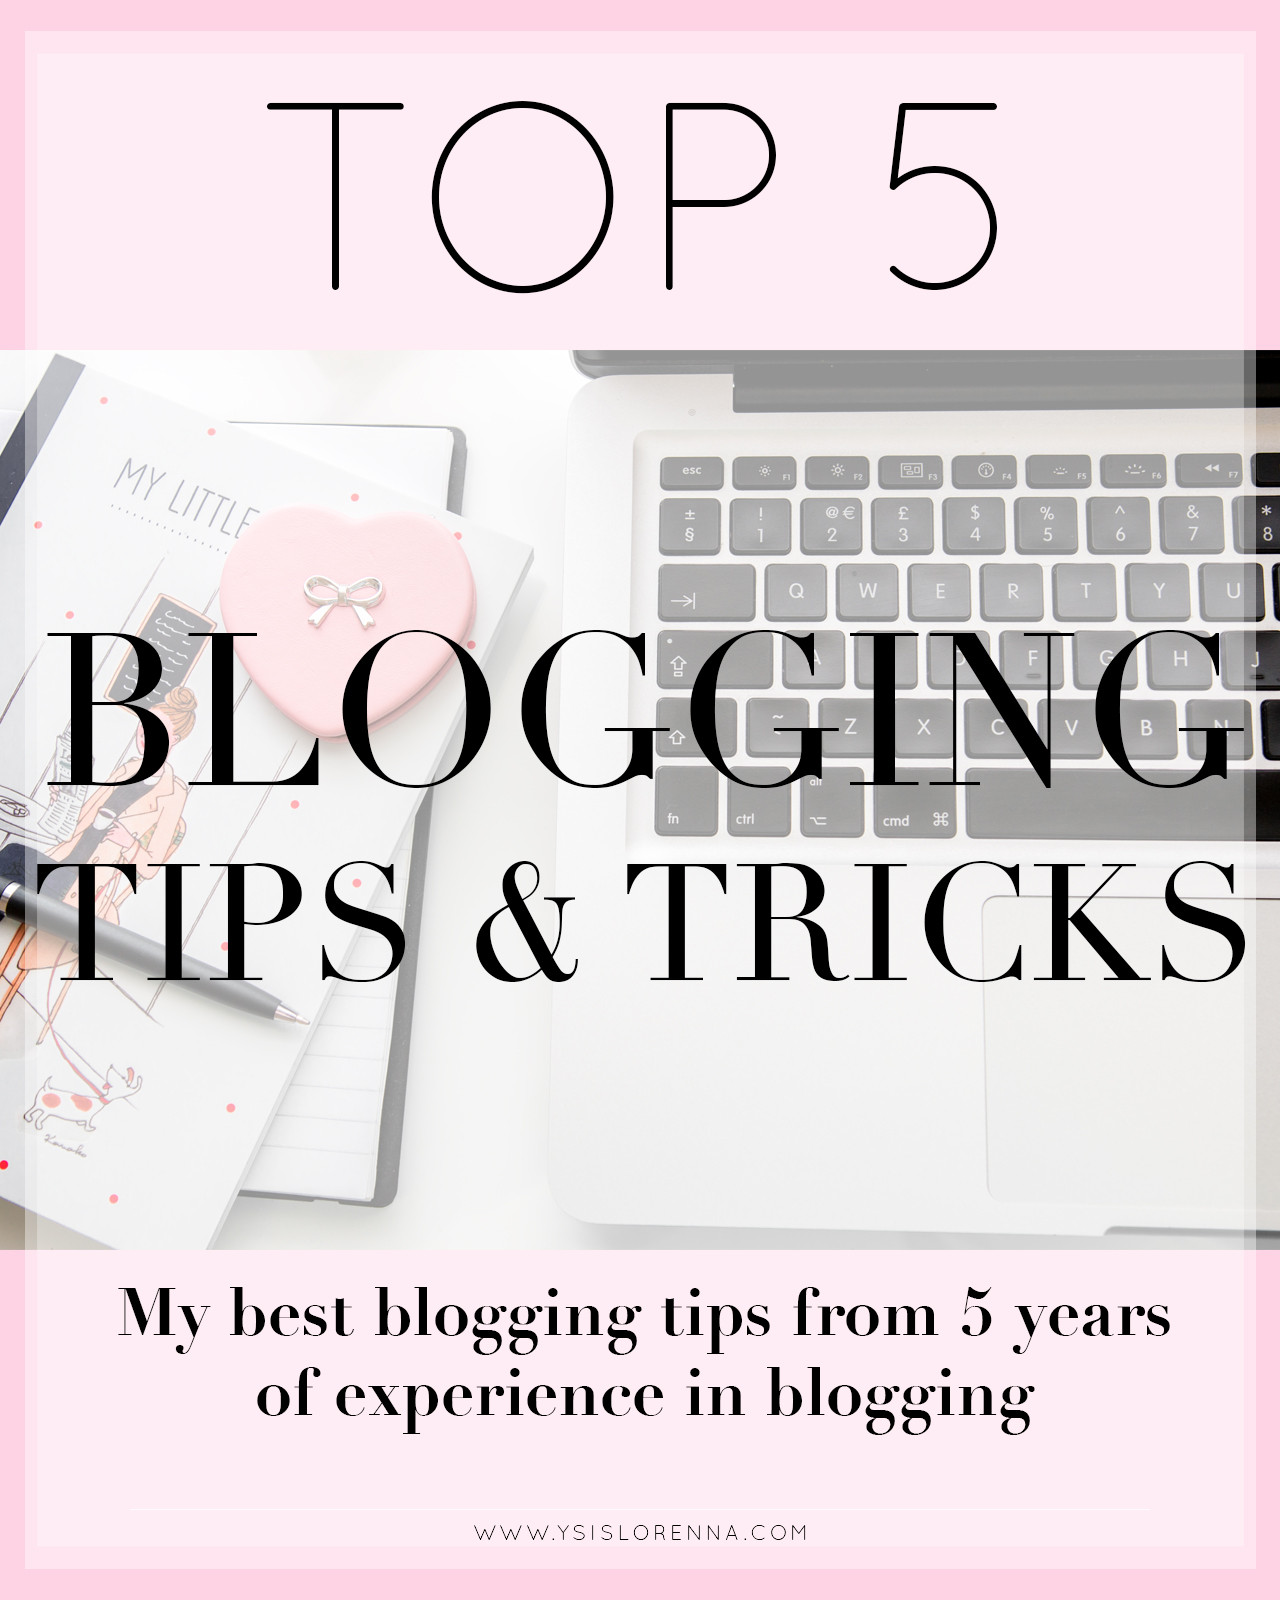 My Top 5 Blogging Tips and Tricks 2016 - www.ysislorenna.com